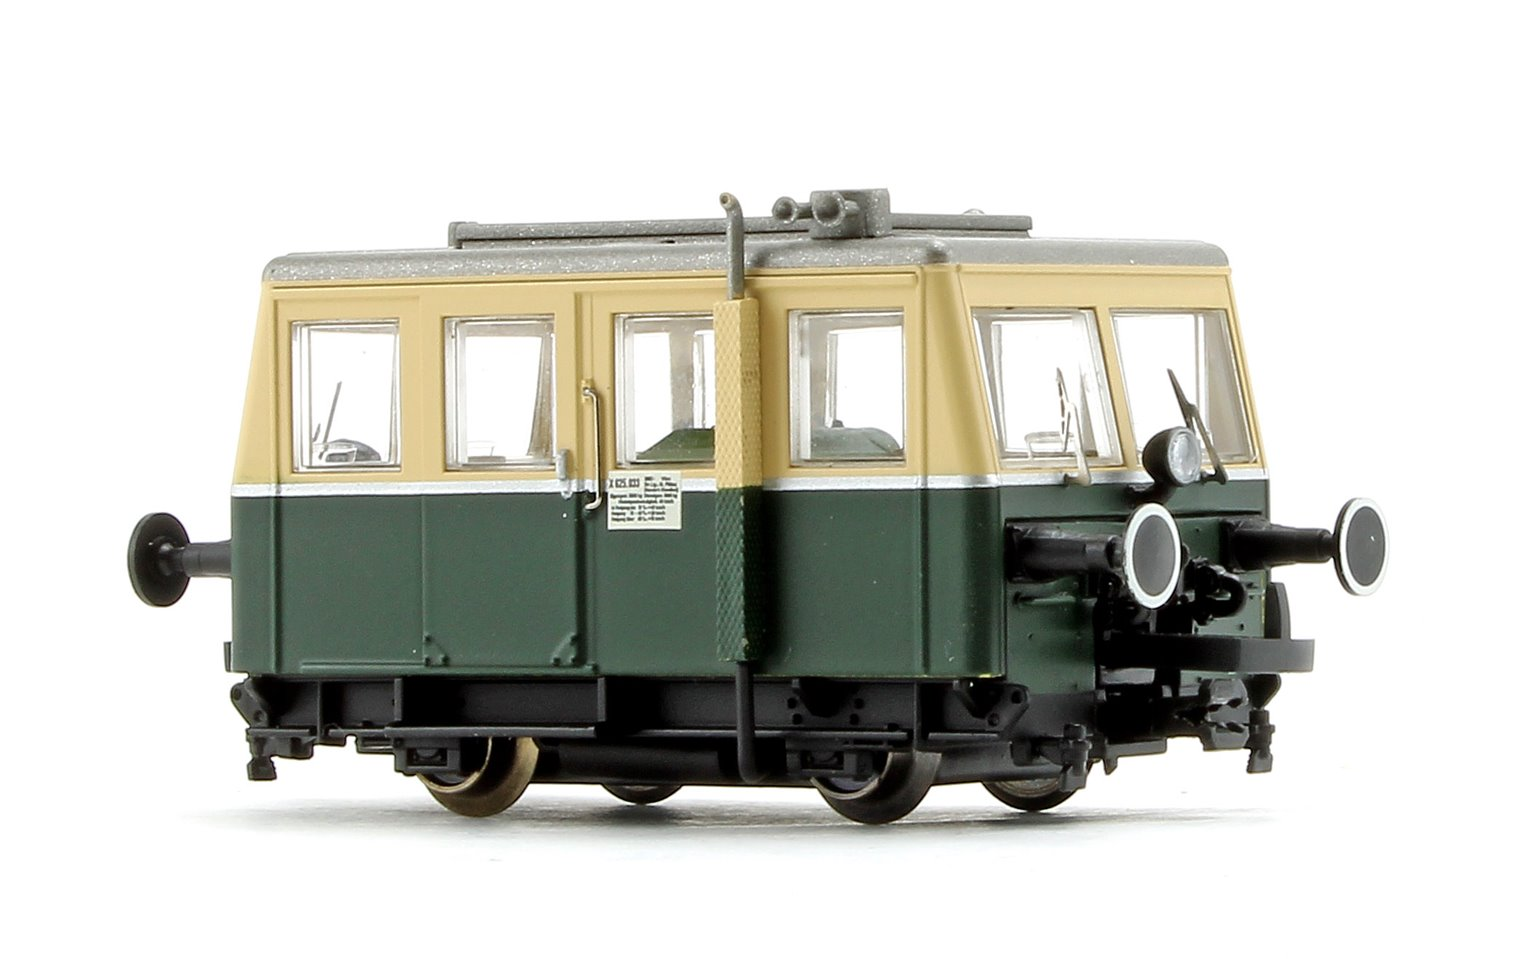 Track Inspection Trolley Locomotive OBB EP X625.033